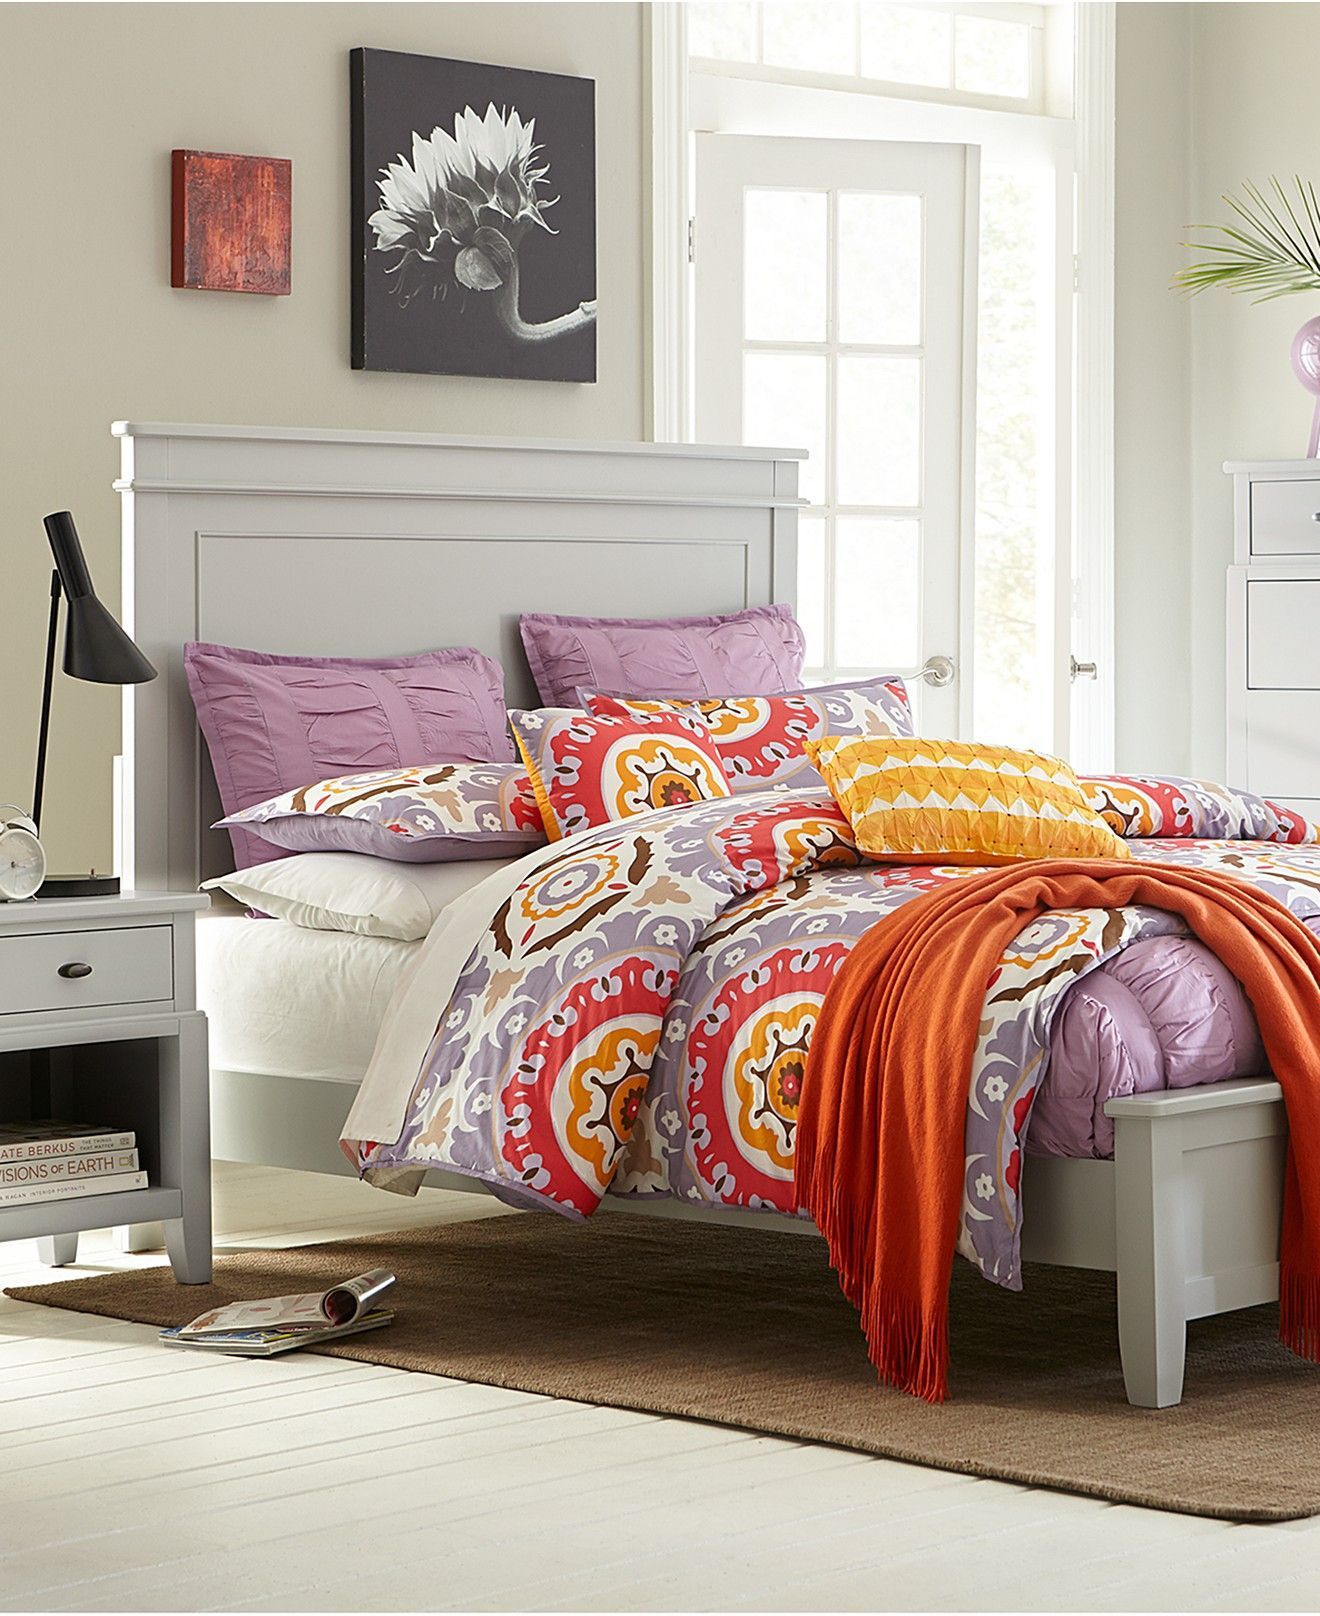 Kamron Bedroom Collection - Bedroom Collections - Furniture - Macy\'s ...